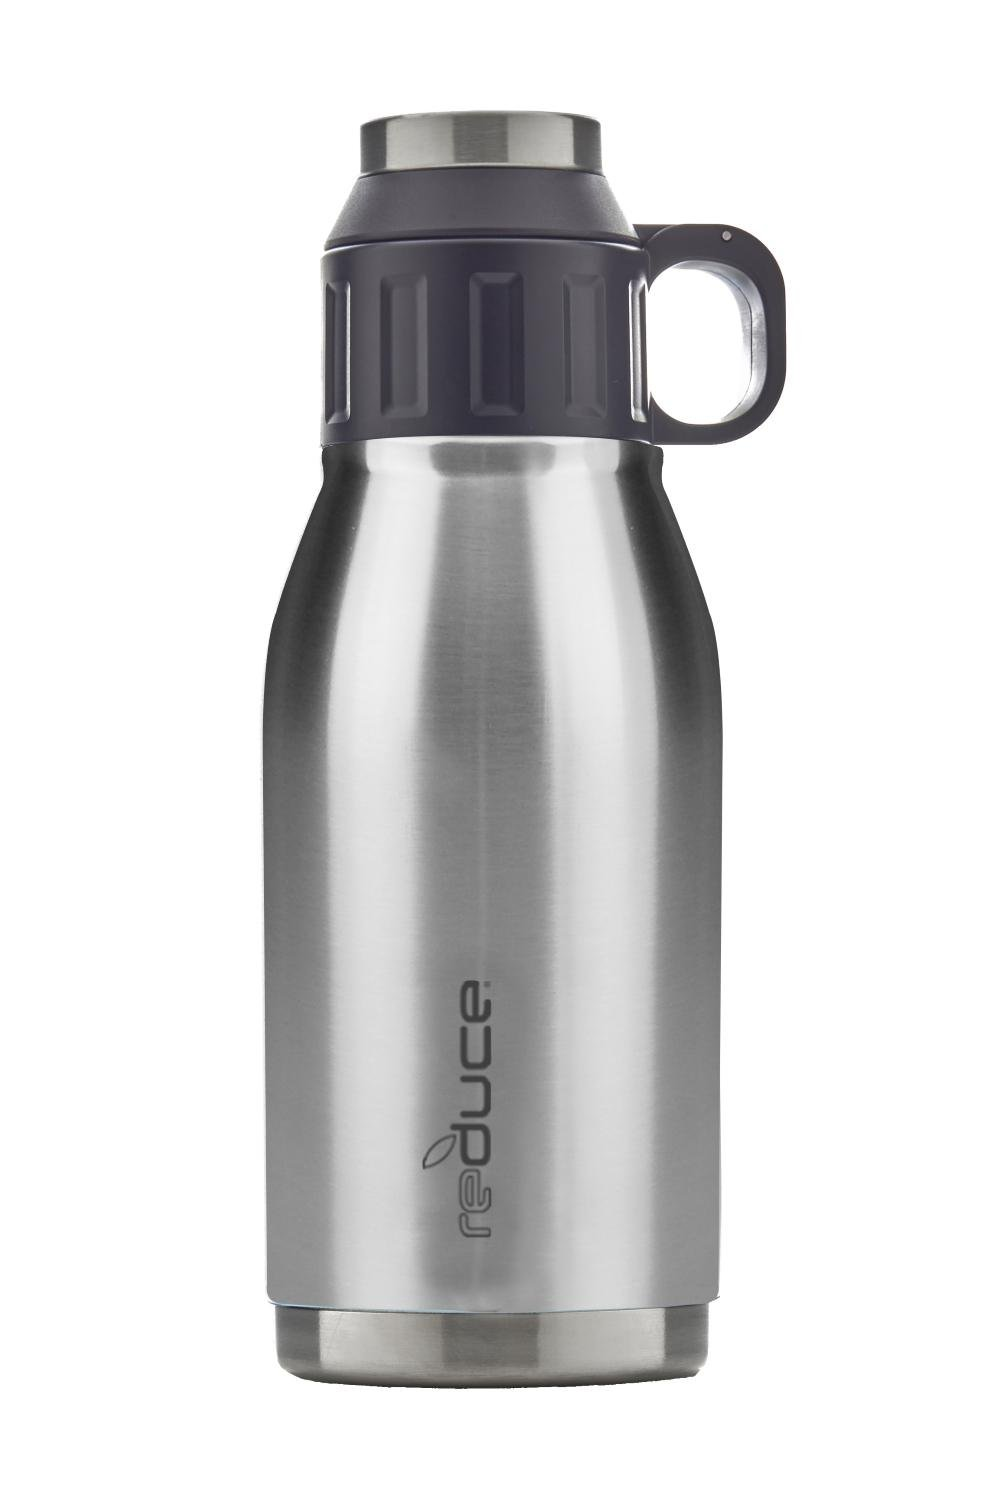 REDUCE Cold-1 Stainless Steel Insulated Canteen, 32oz (Stainless Steel)